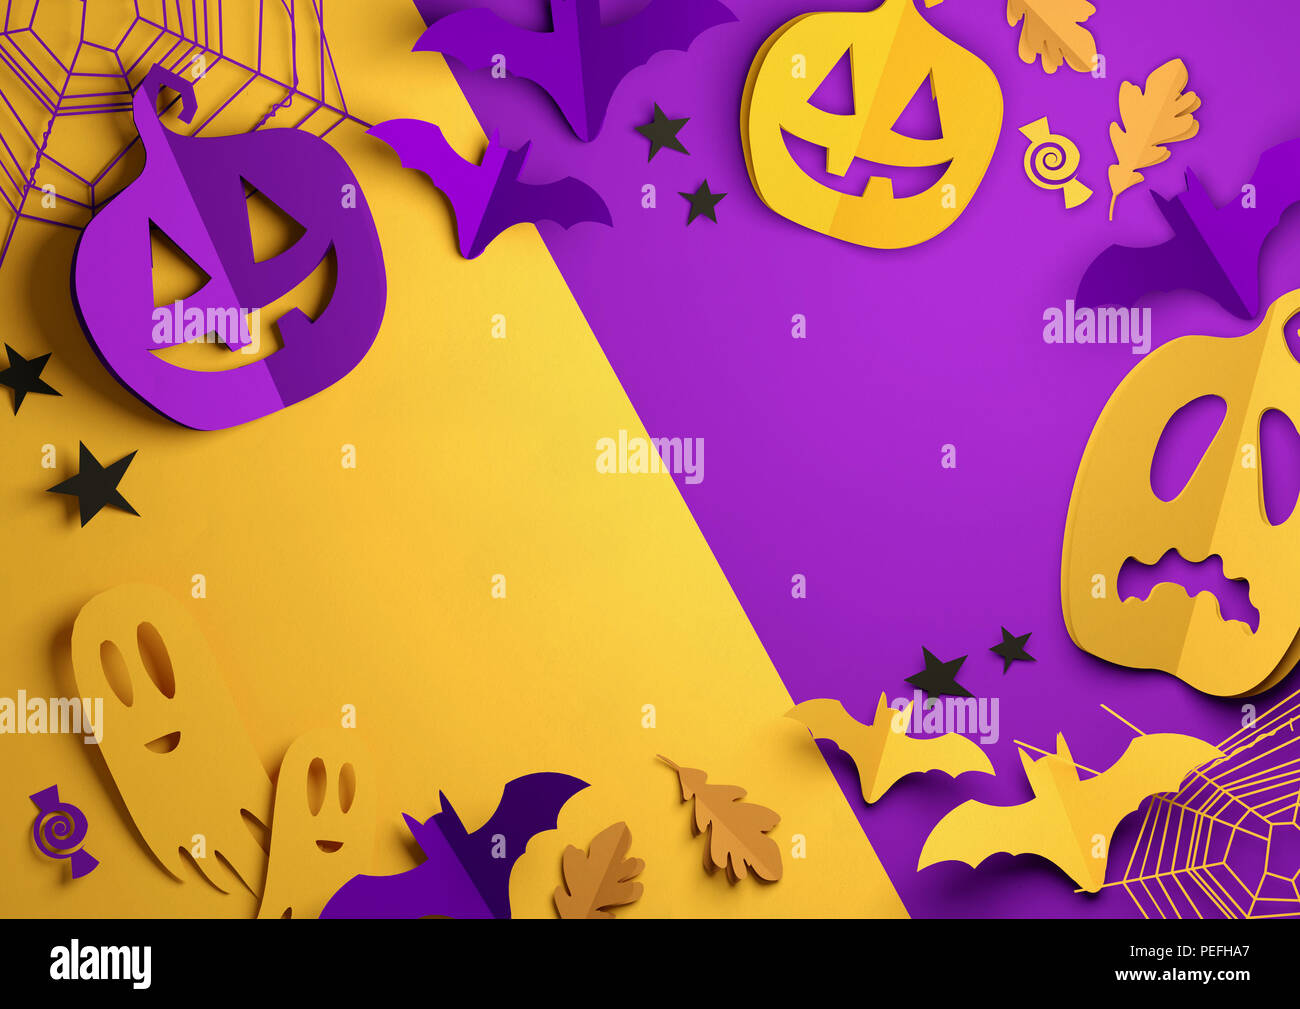 Folded Paper art origami. Purple and Orange Halloween background with cut out pumpkins, paper bats, ghosts and other decorations. 3D illustration. - Stock Image